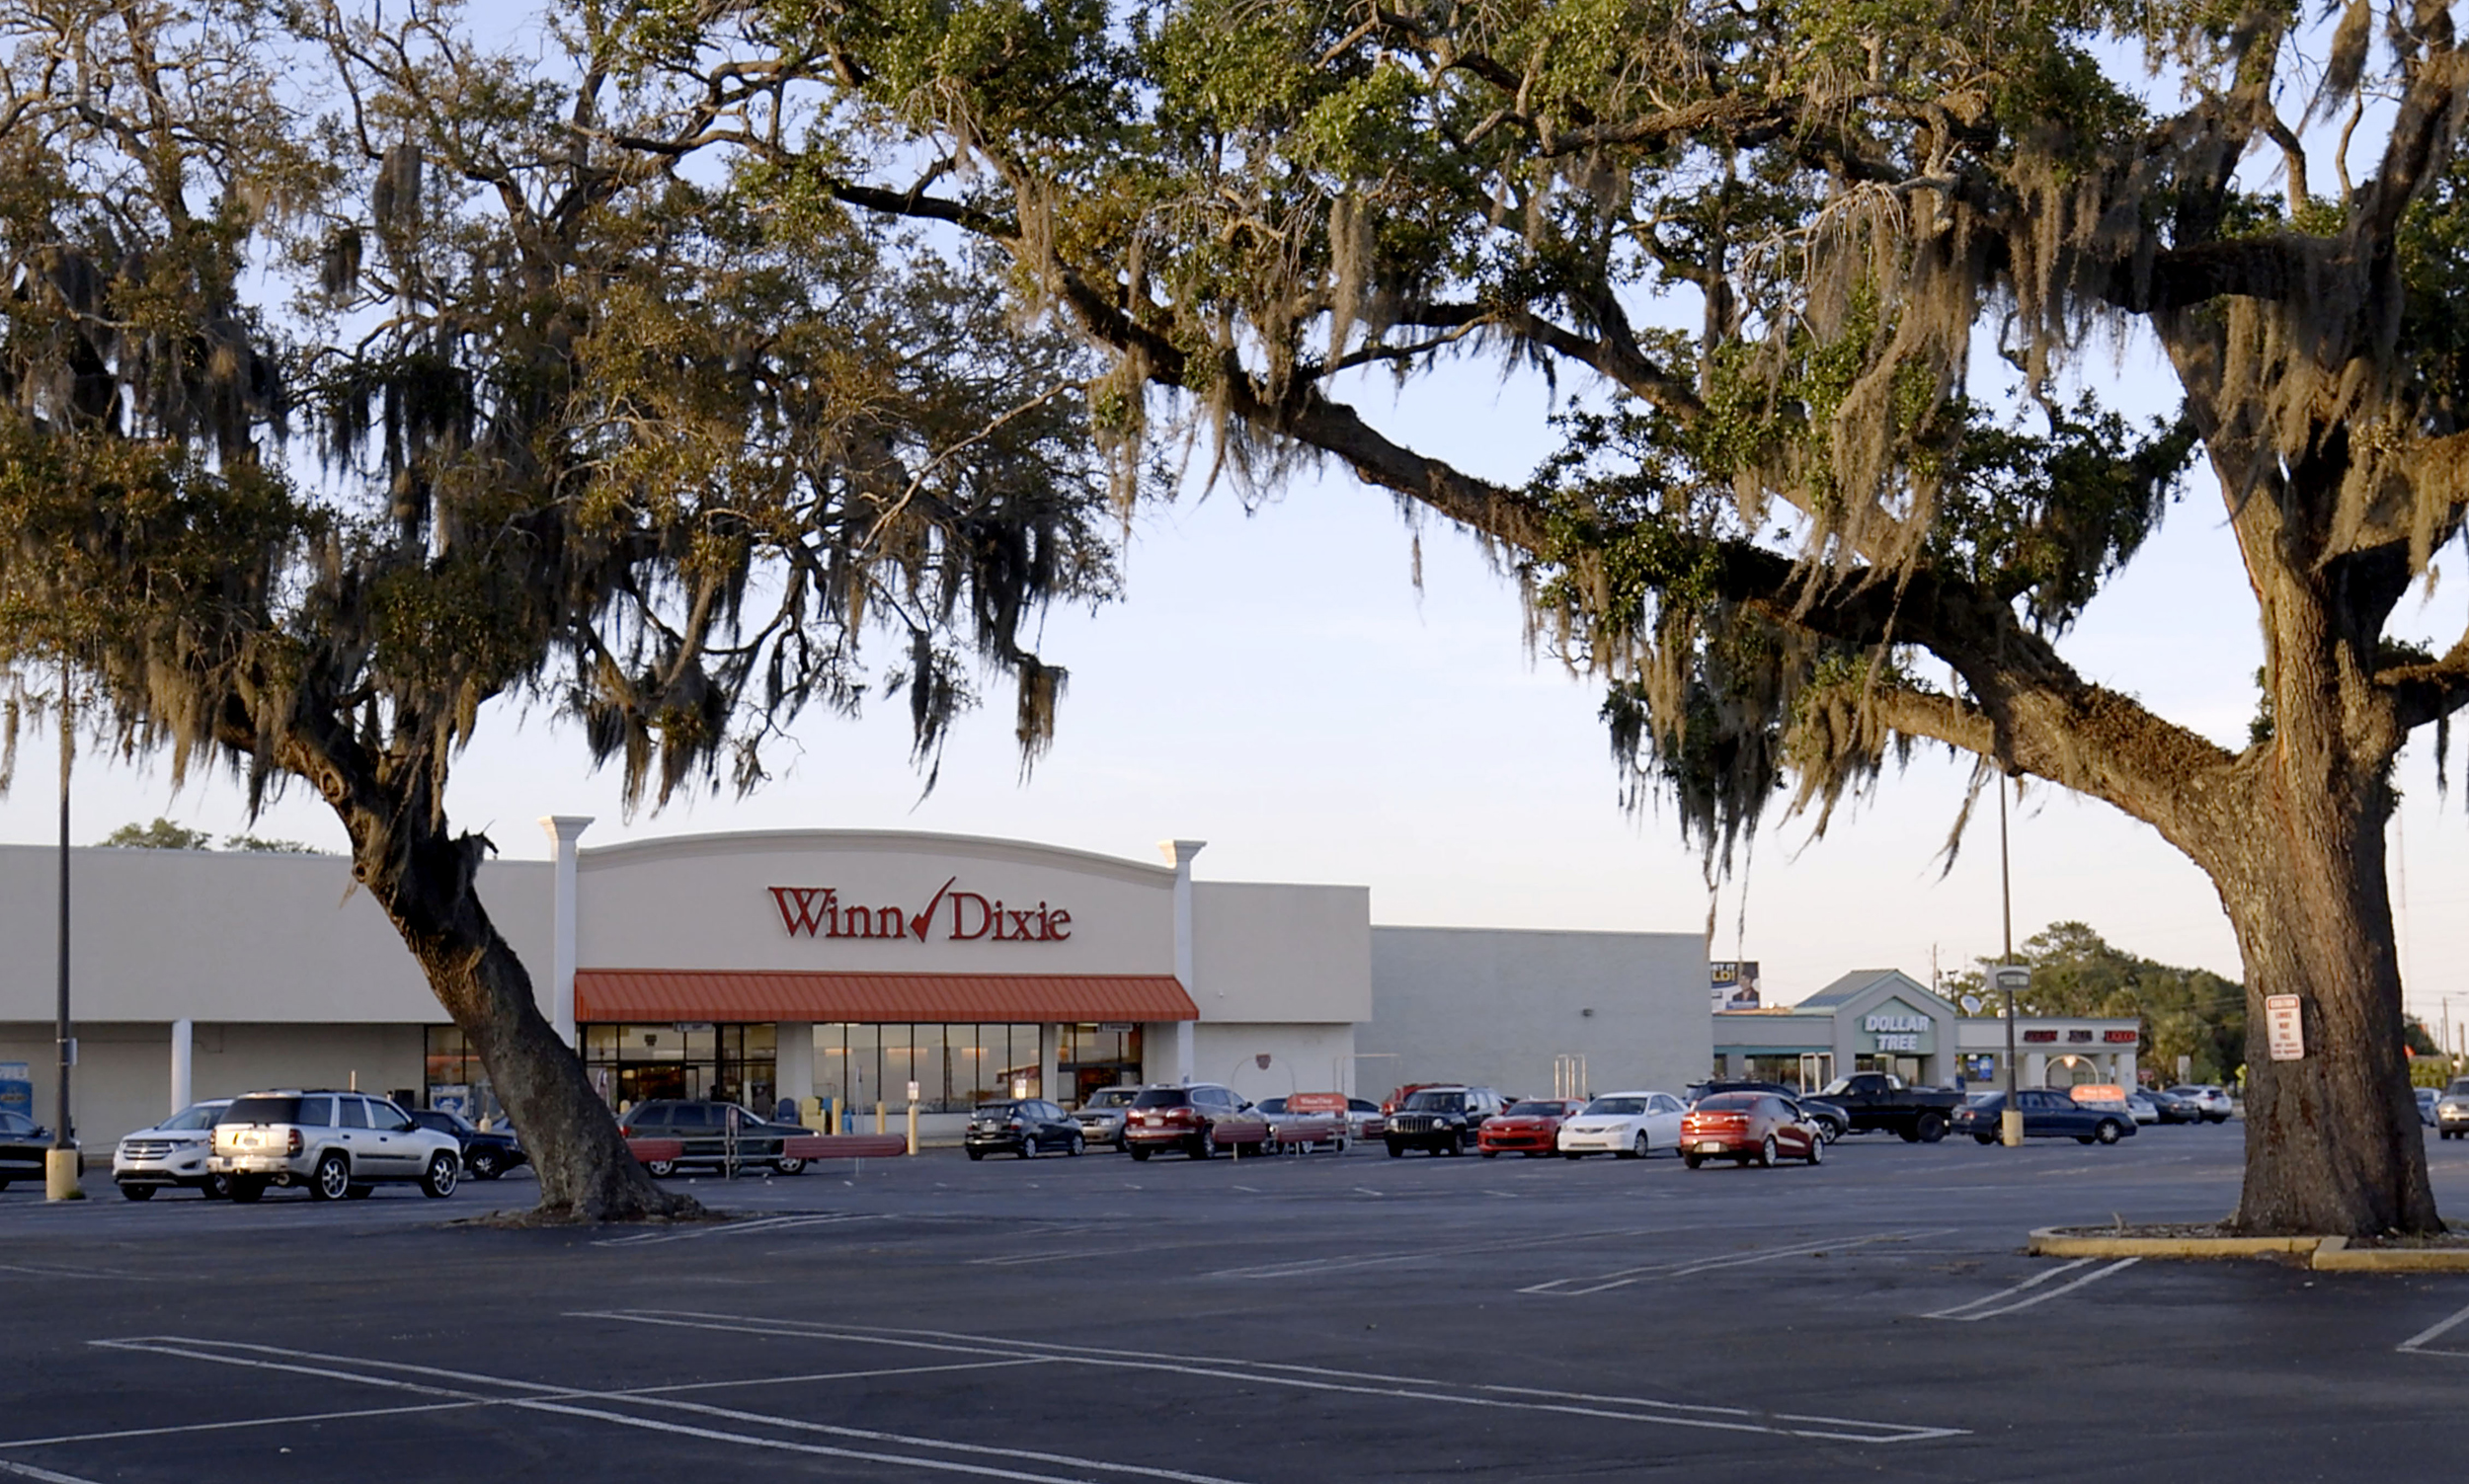 The Winn-Dixie where Erik Sparre was said to have been working on the night of the murders is about 15 miles from the church.